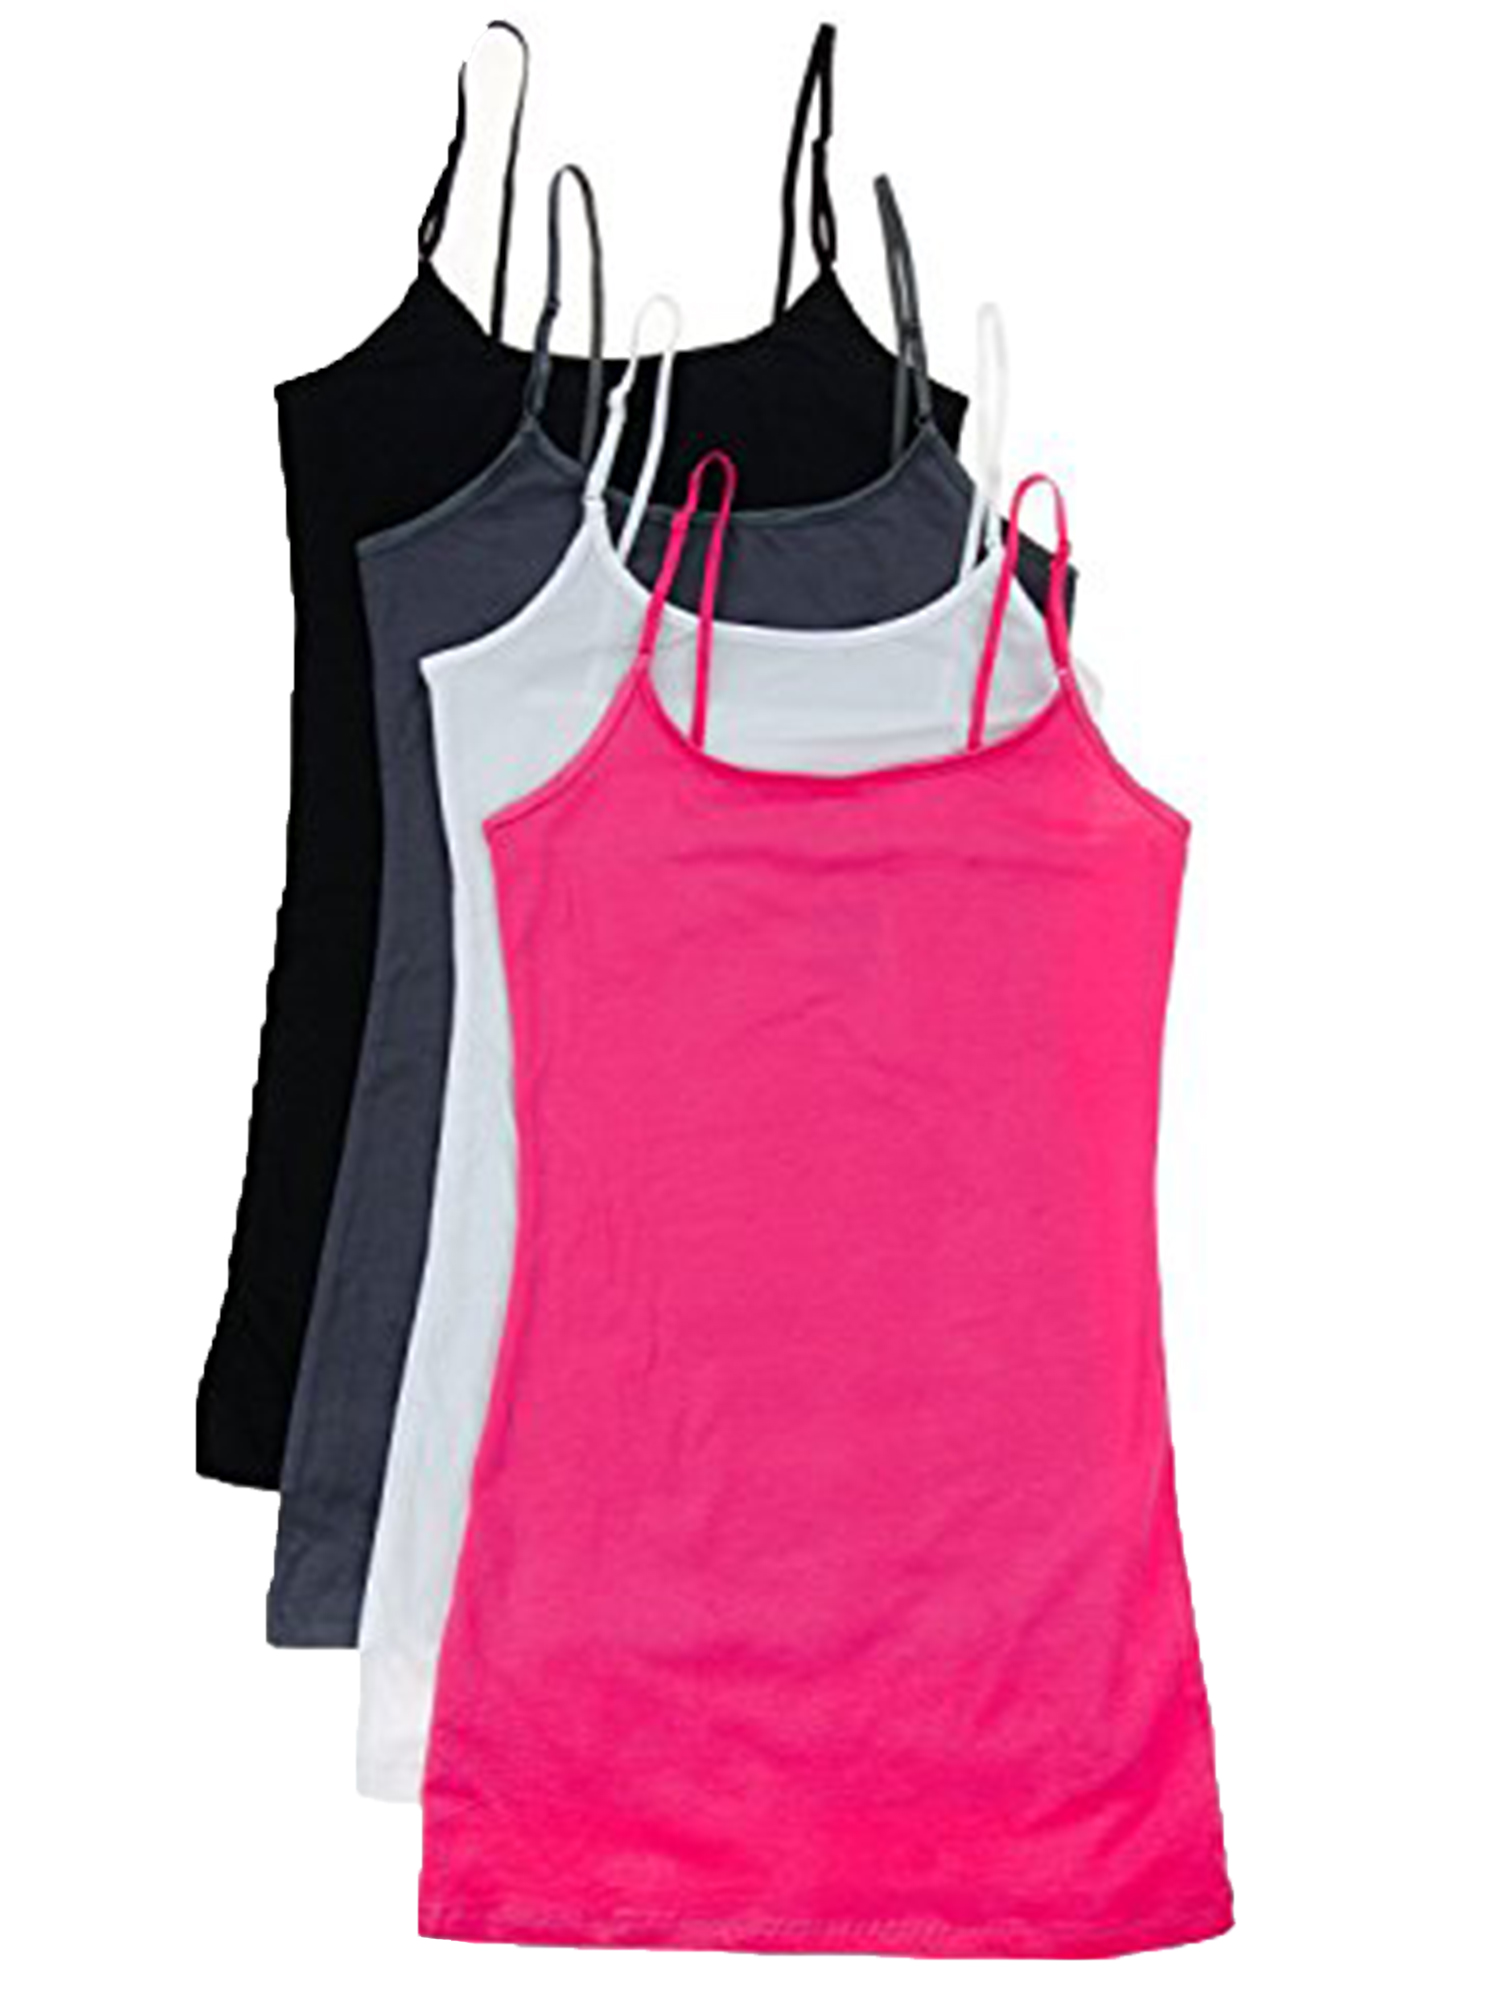 Essential Basic Women Value Pack Deal Cami Tanks Adjustable Spagetti Strap Many Colors - Small to 3XL